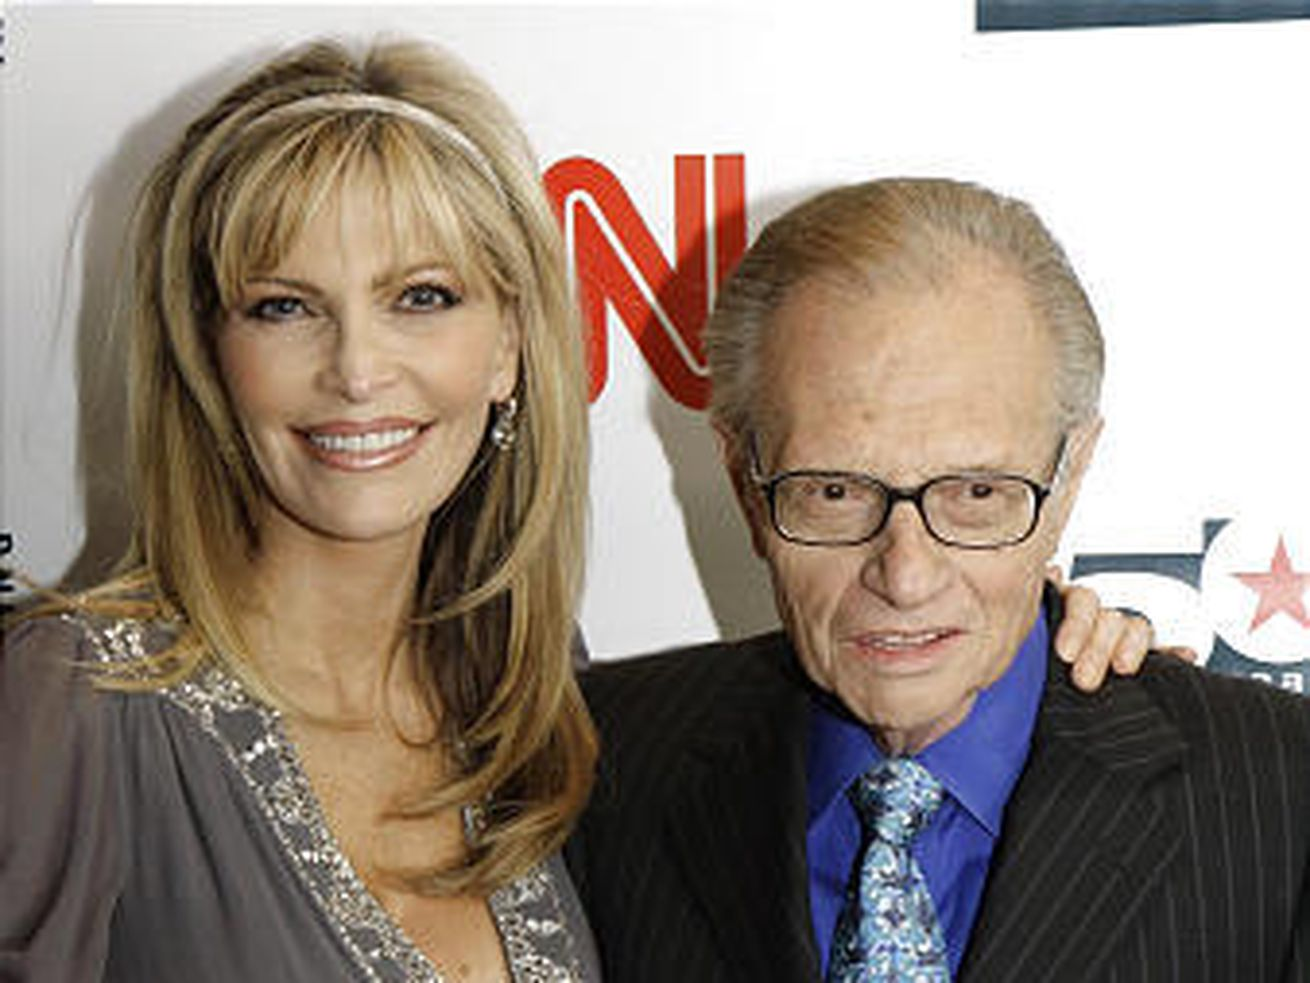 Larry King seeks divorce from Utah native Shawn Southwick King. Here's a look back at her Utah life